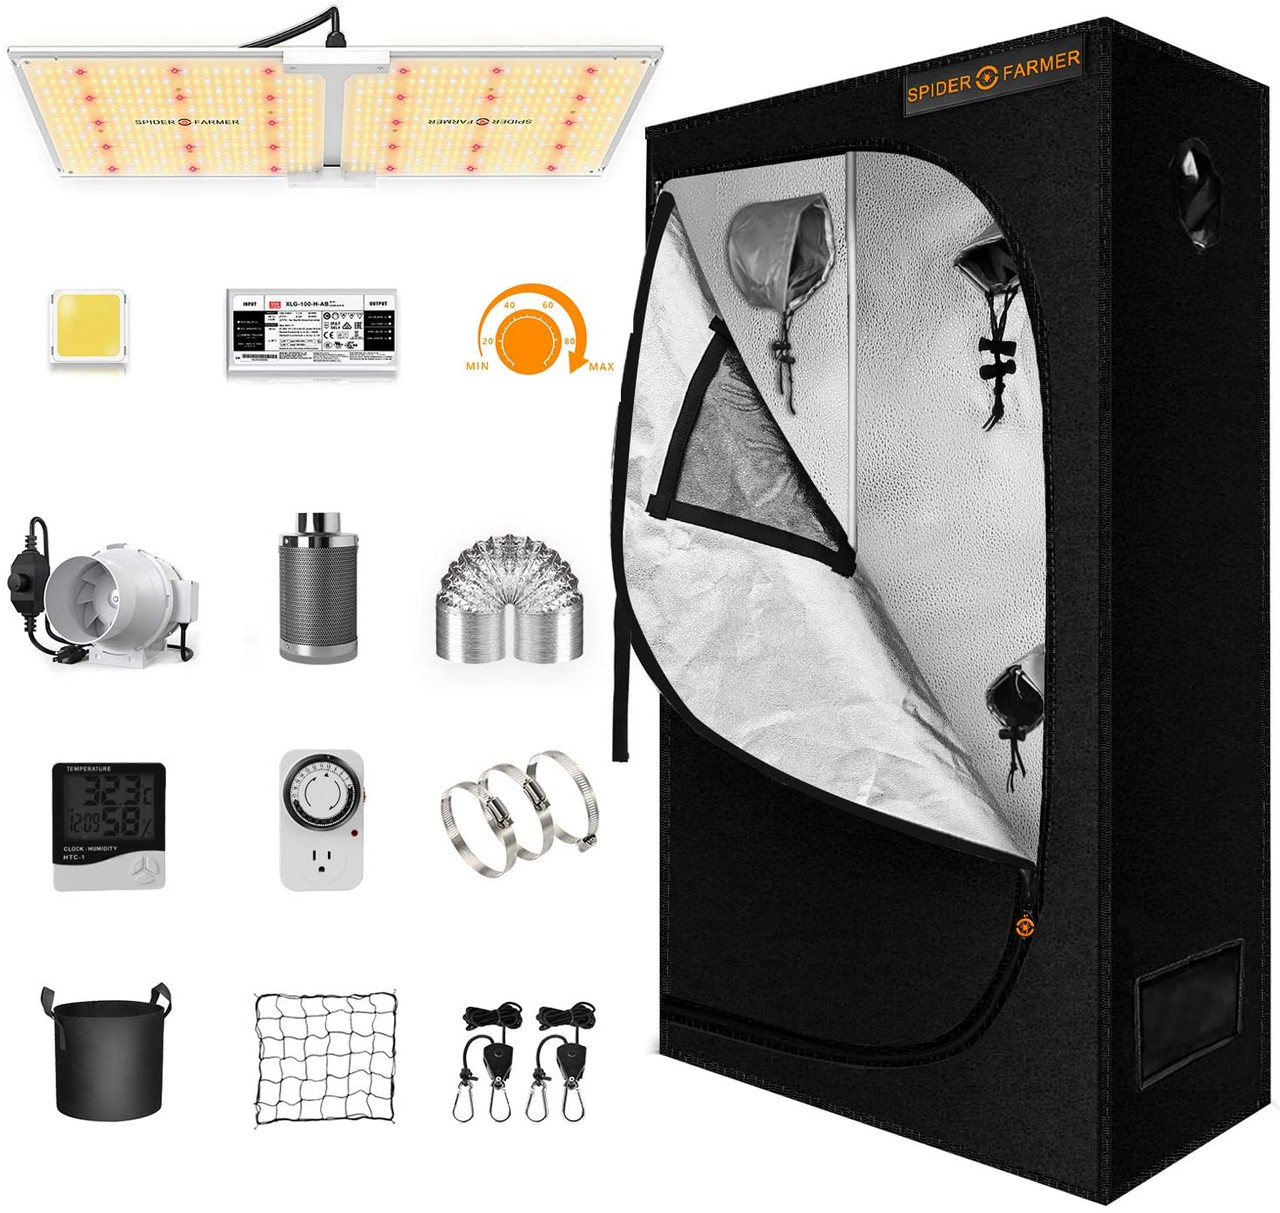 Spider Farmer Complete Grow Tent Kit -SF2000